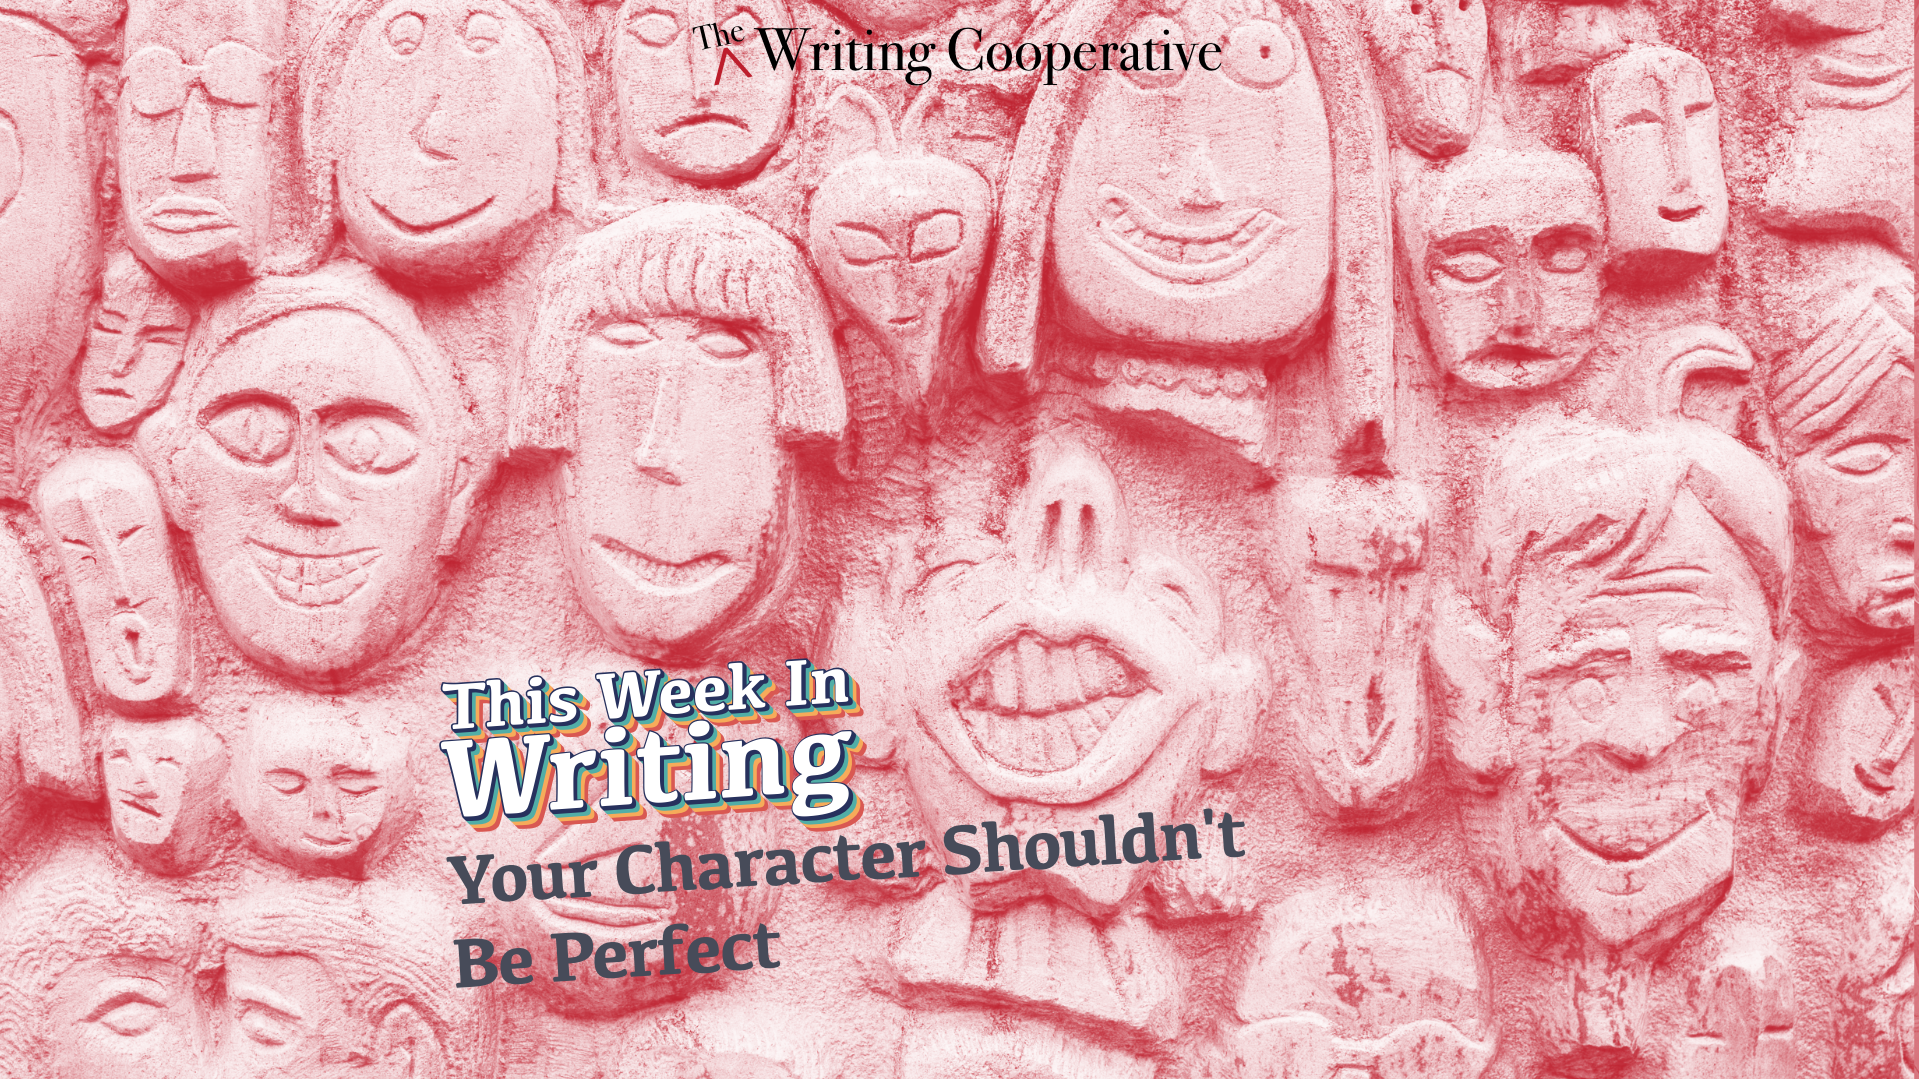 What Are Your Character's Flaws?